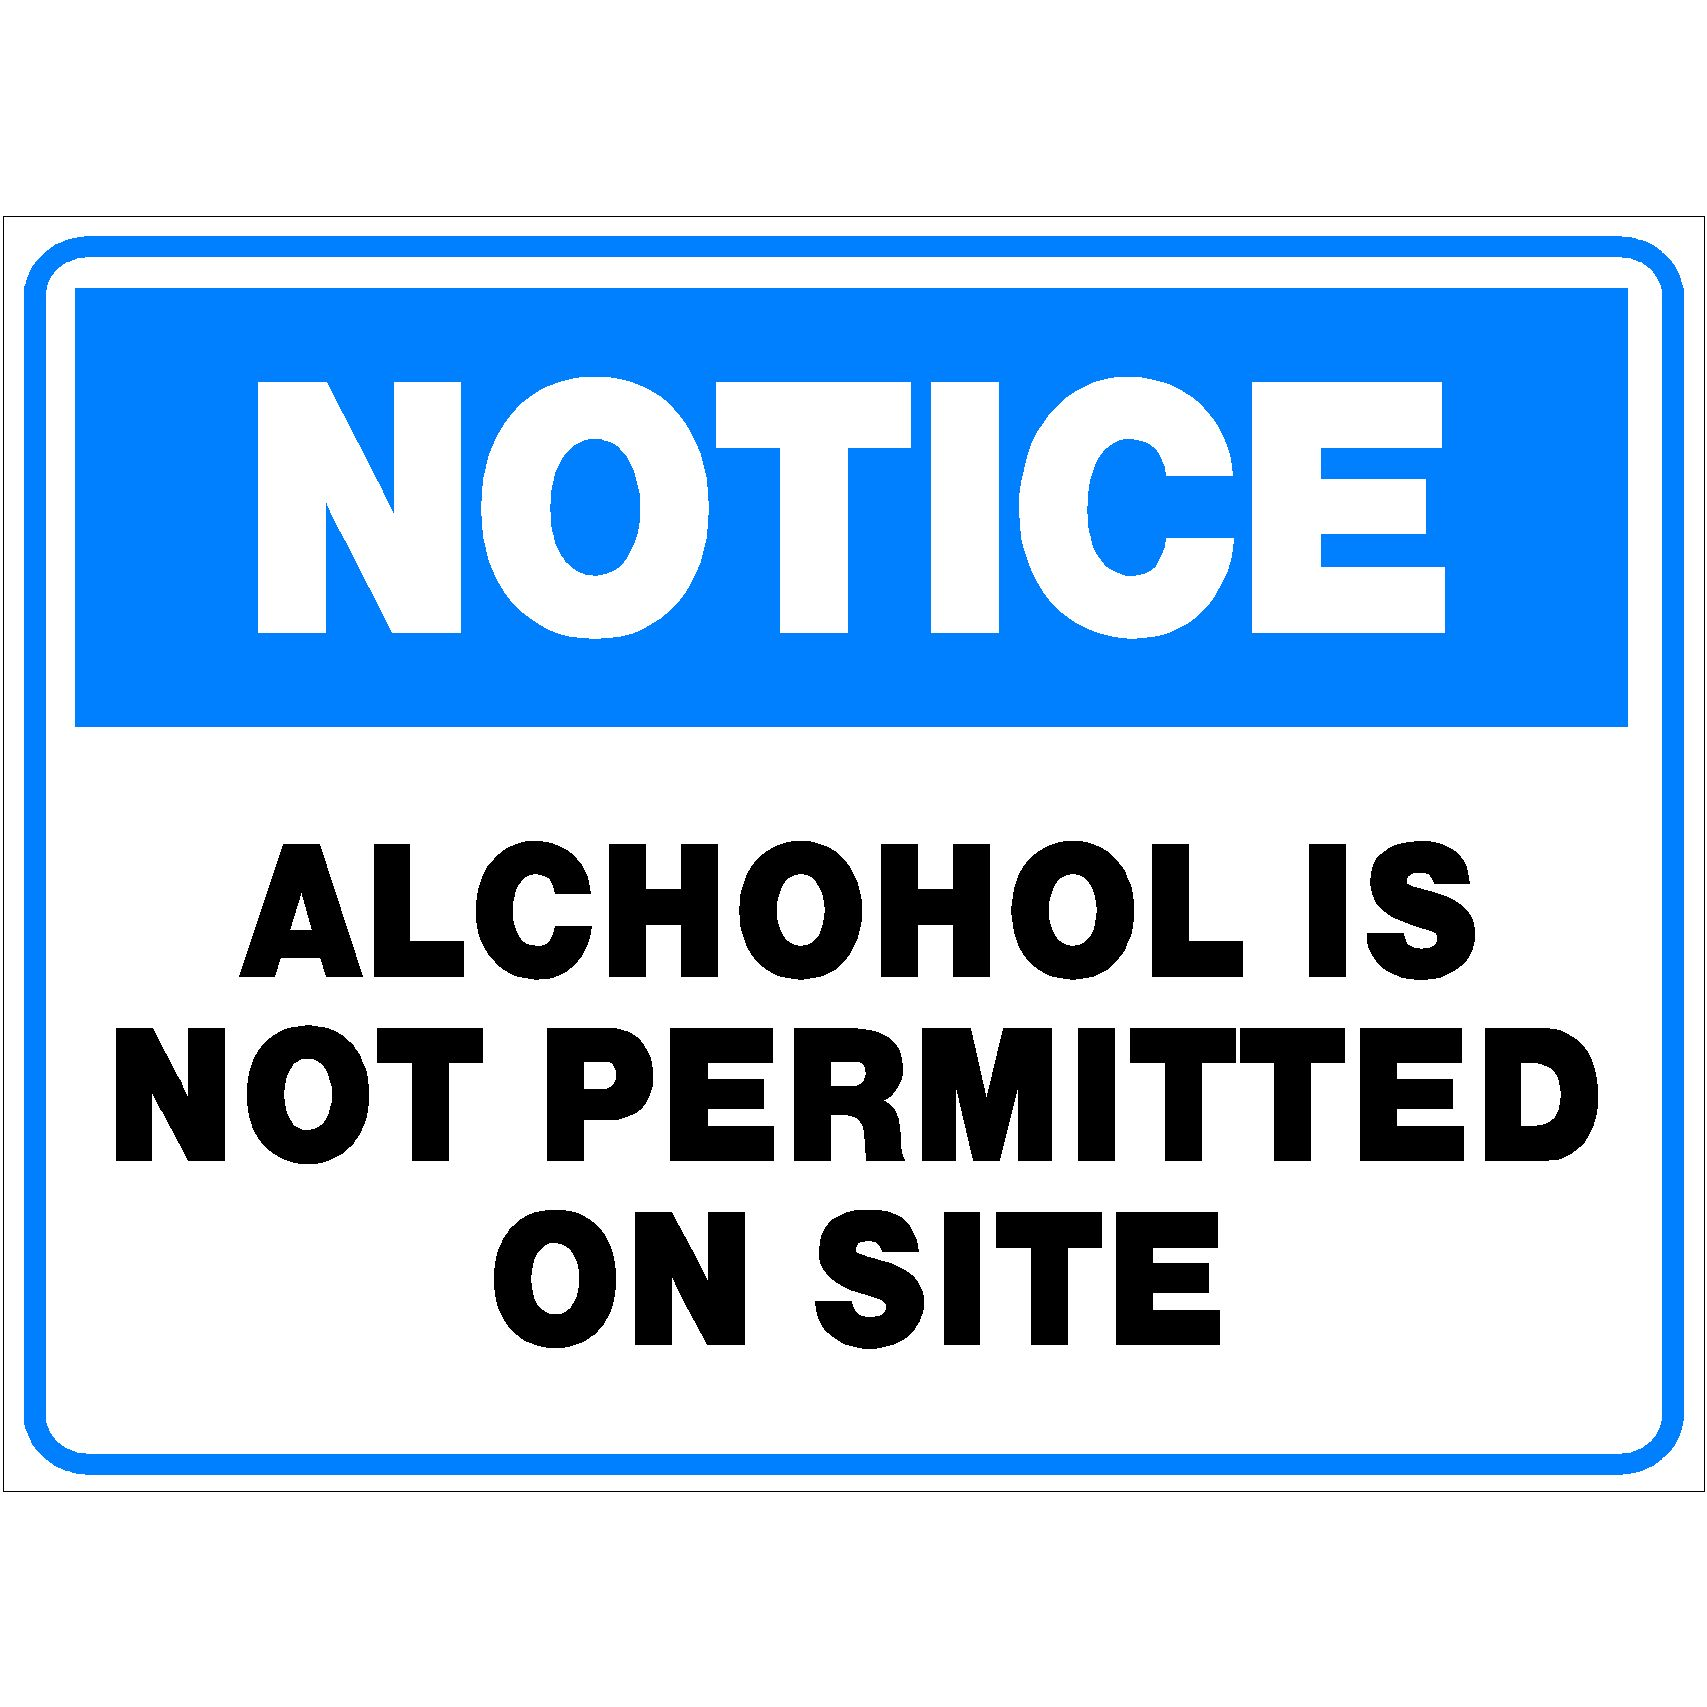 Notice Alcohol Is Not Permitted On Site